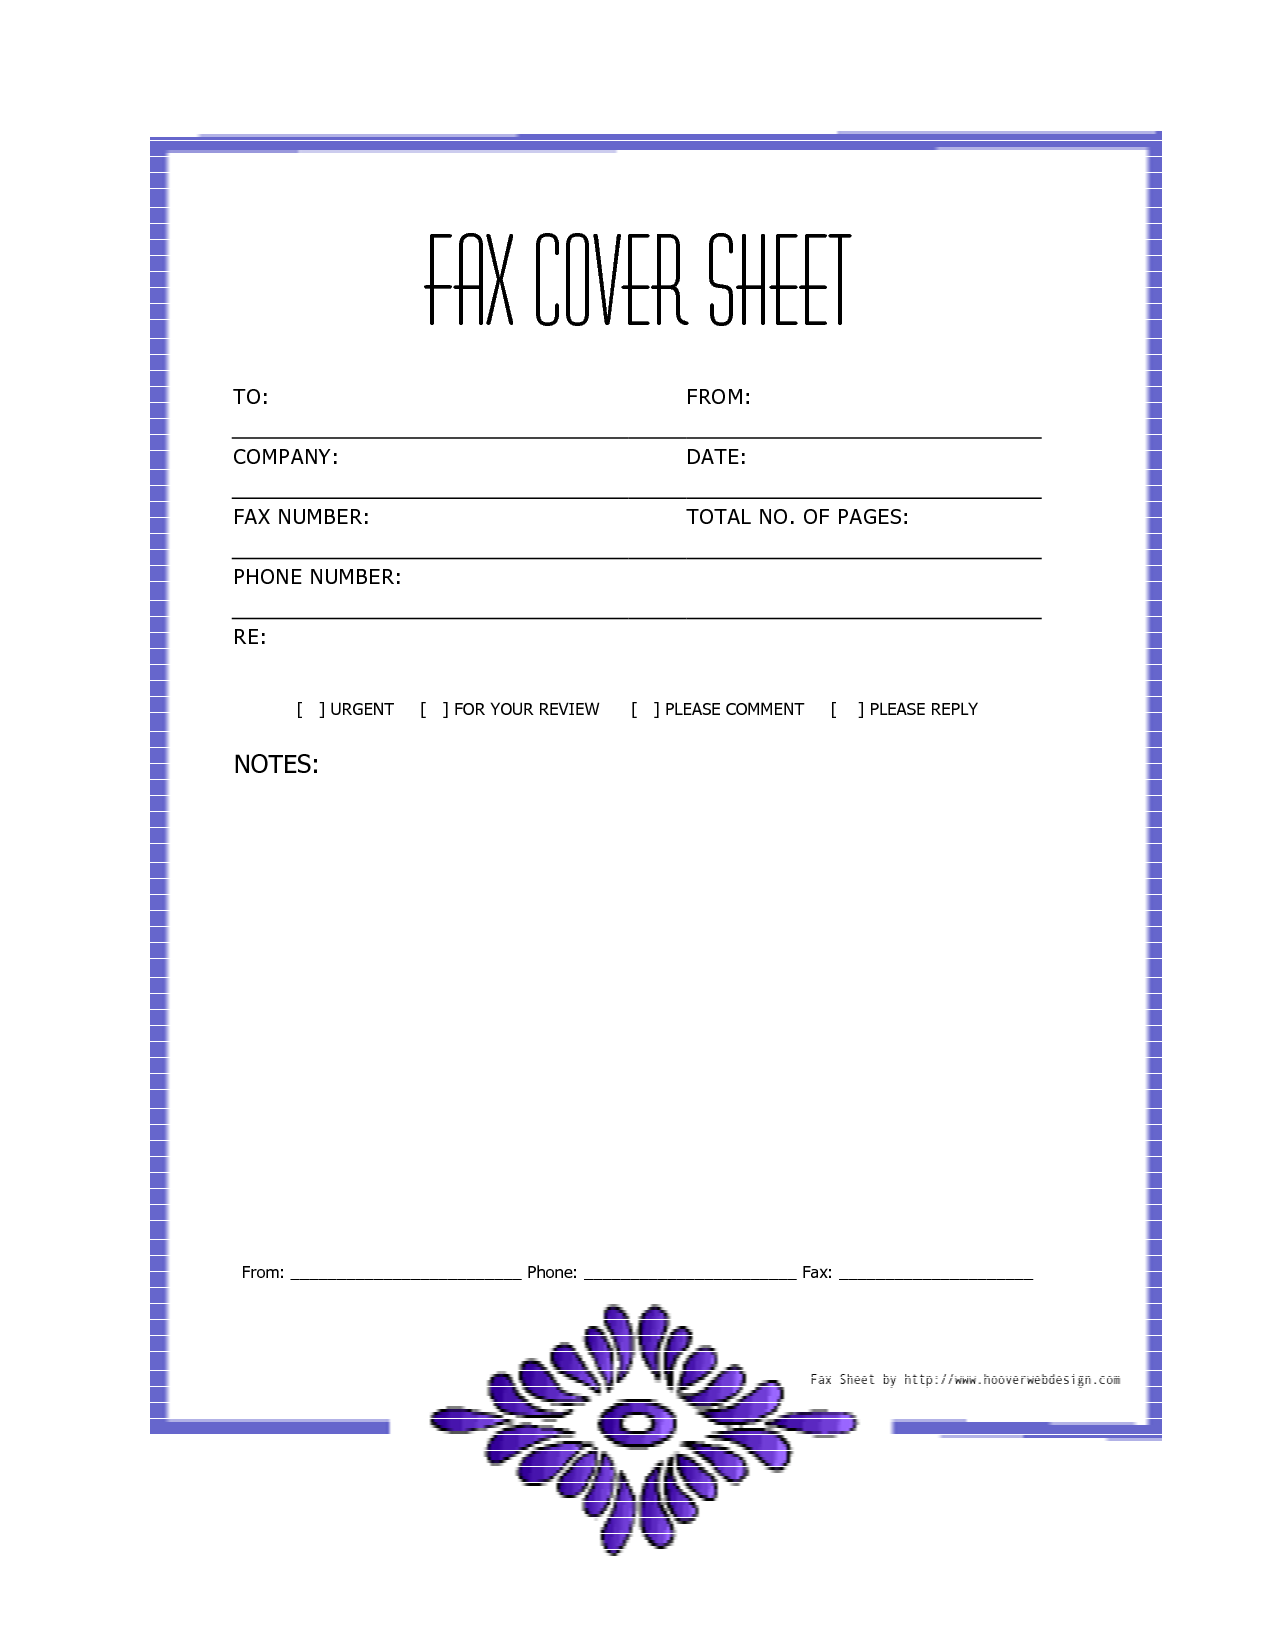 Free Downloads Fax Covers Sheets | Free Printable Fax Cover Sheet Template  Elegant   Download As  Example Of Fax Cover Letter